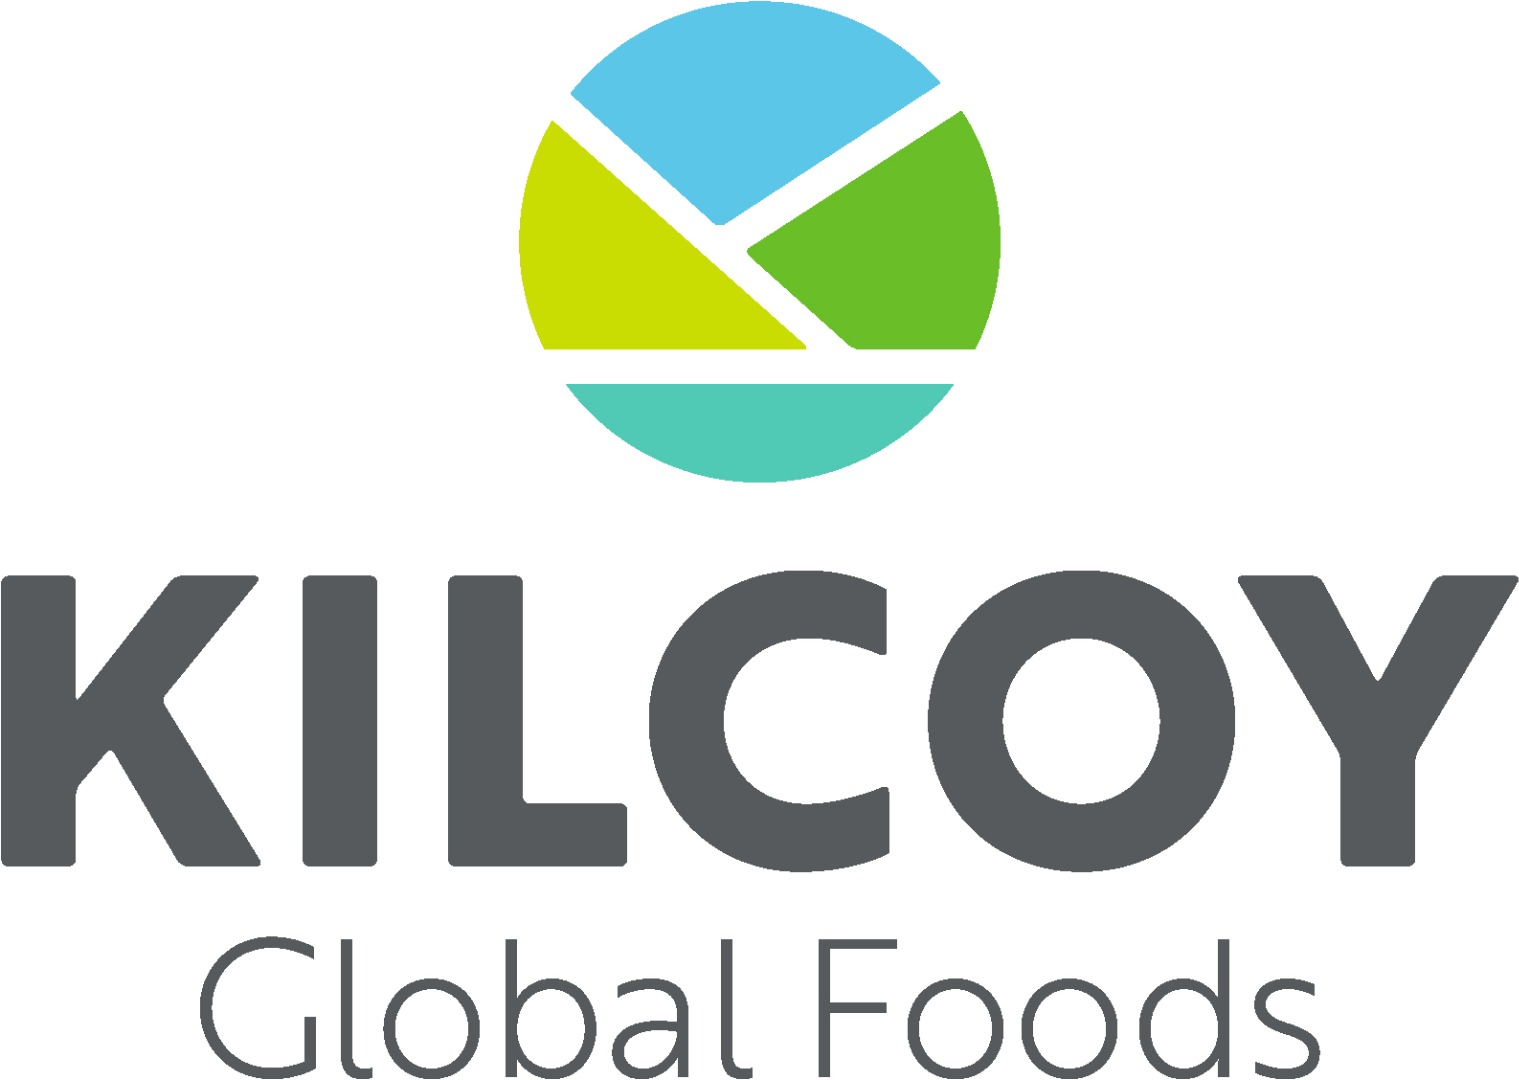 Kilcoy Global Foods